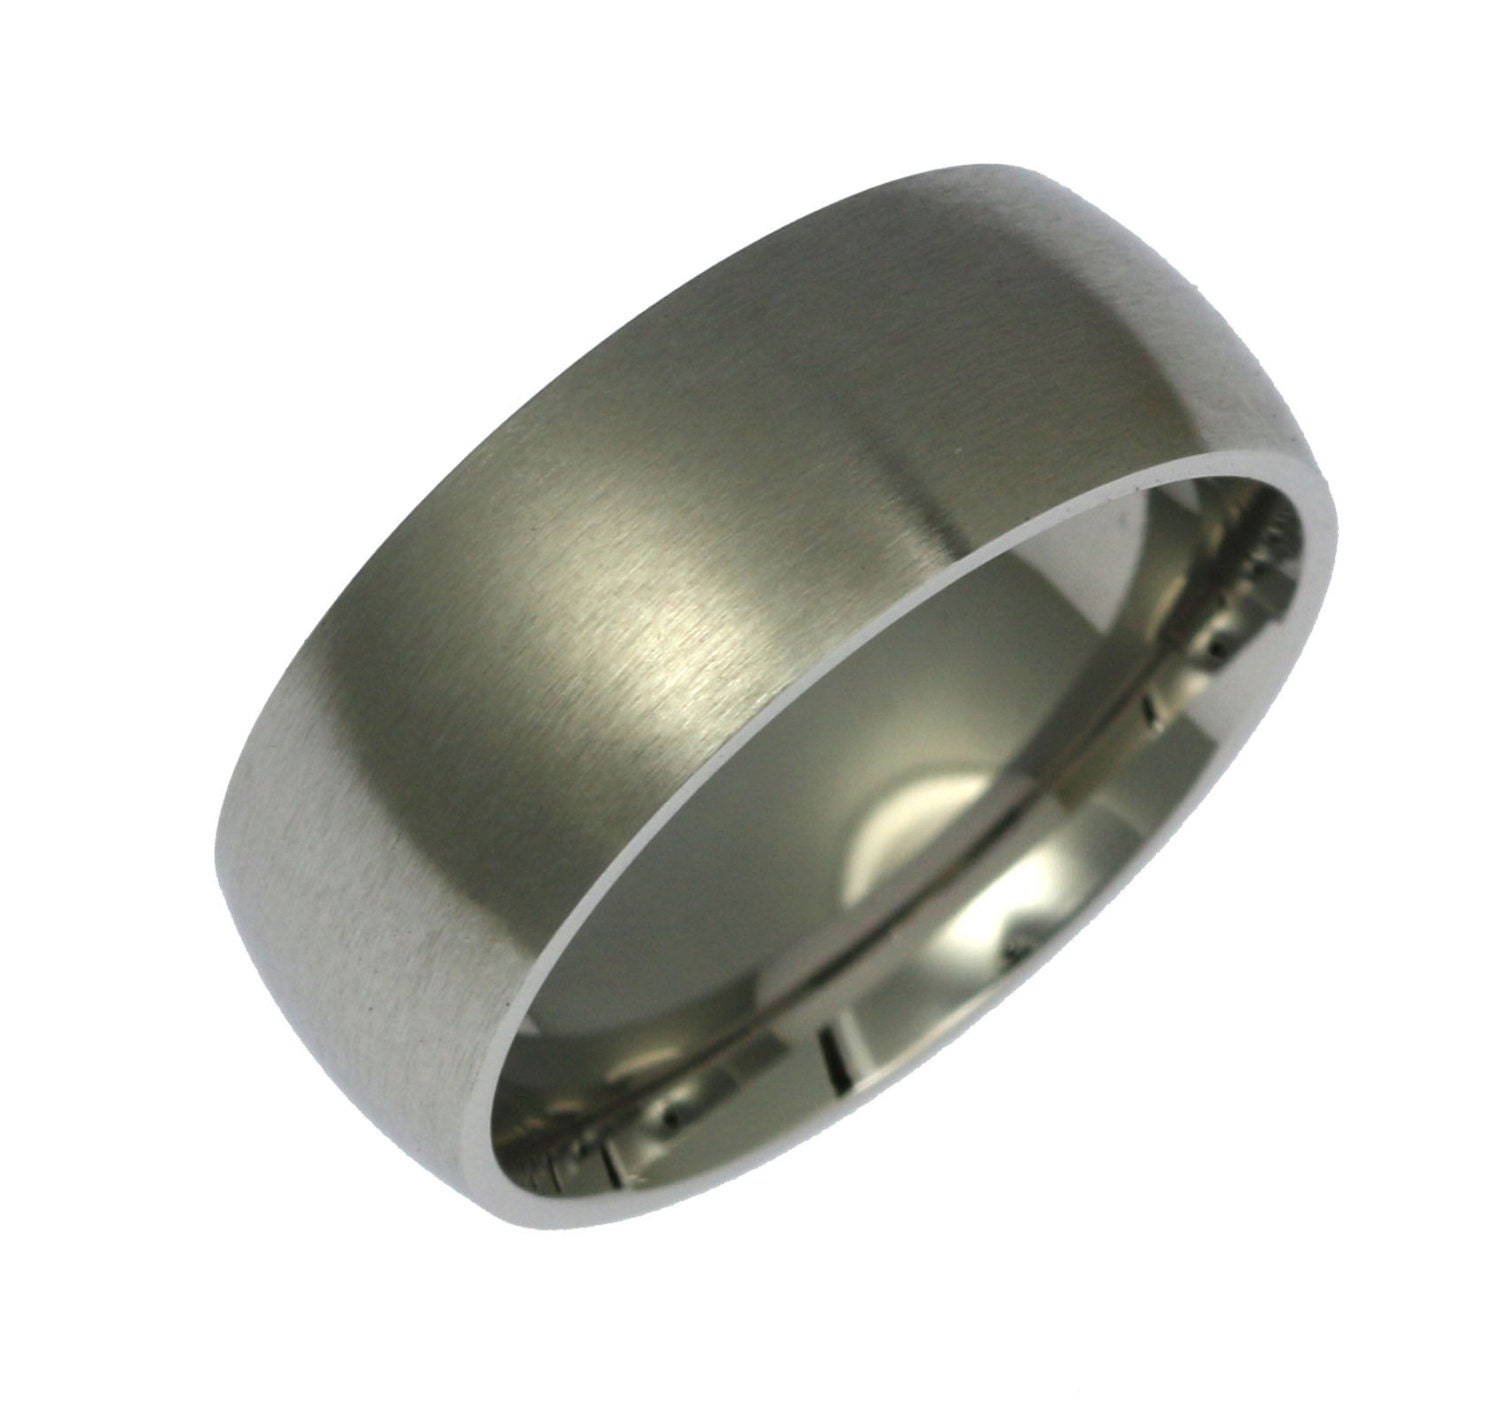 Stainless Steel Mens Wedding Band Ring 8mm: 8mm Brushed Stainless Steel Mens Ring Mens Steel Wedding